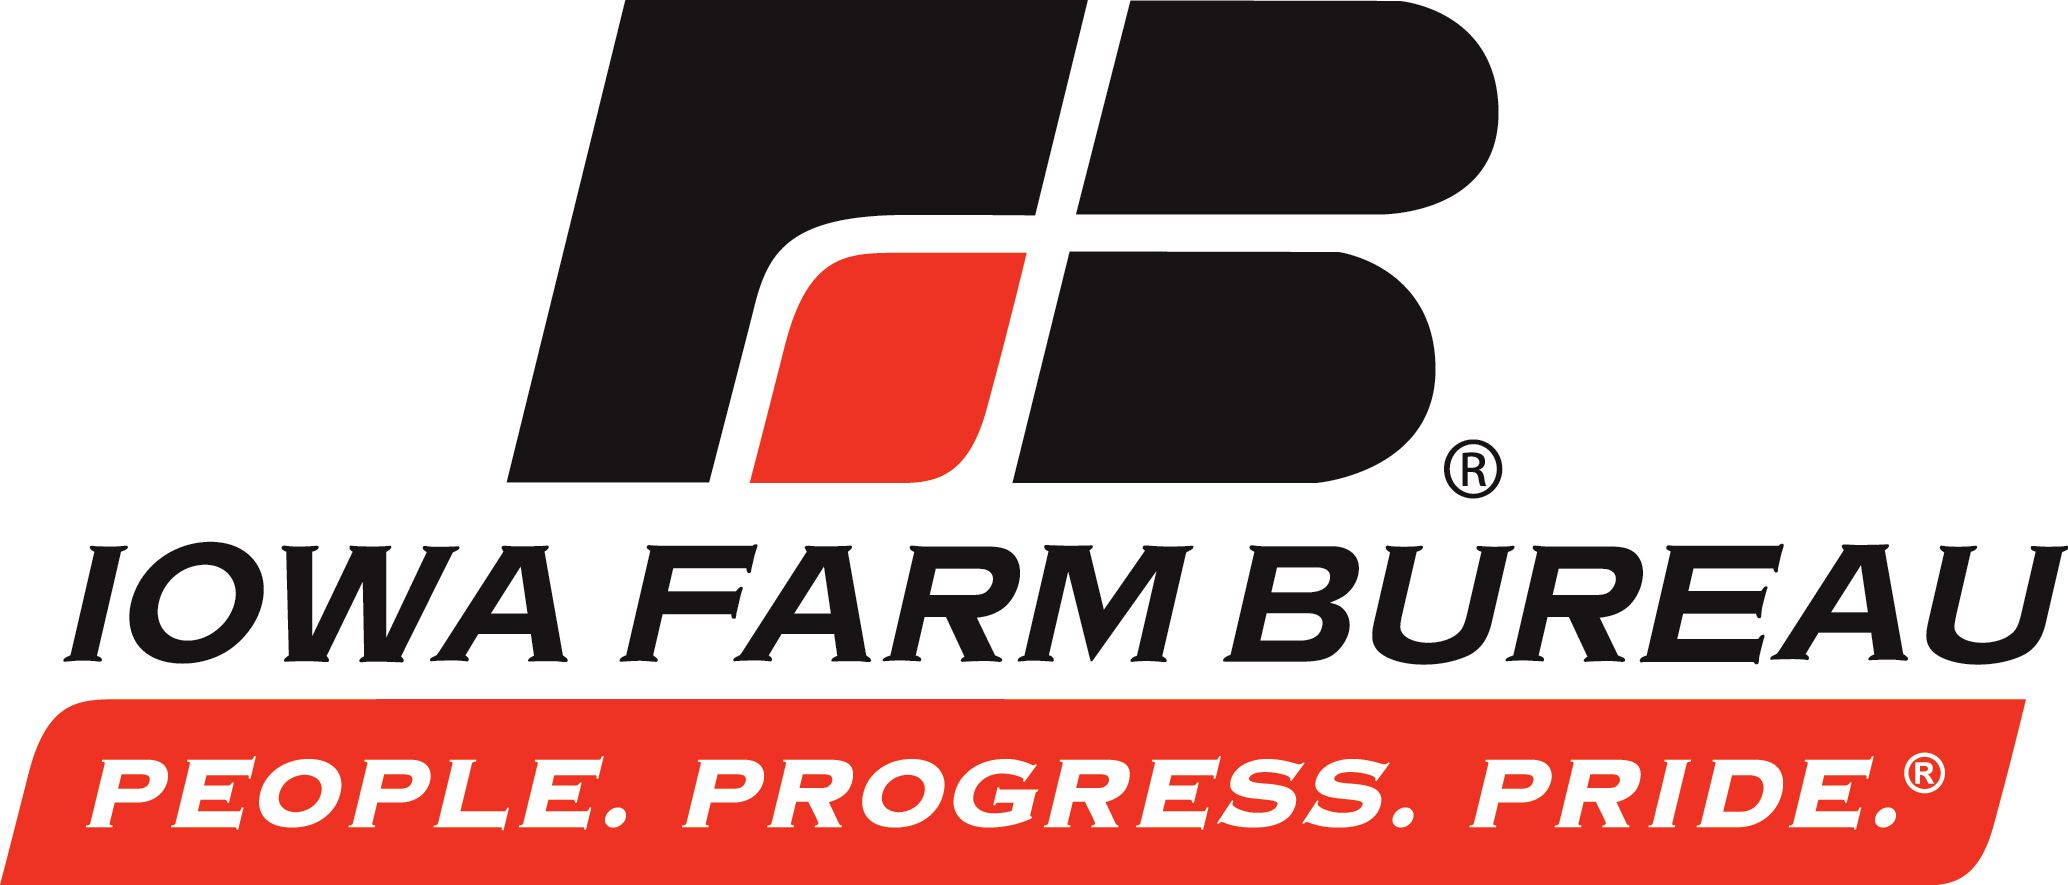 Iowa Farm Bureau Logo - Avant Marketing Enterprise Branding Case Study